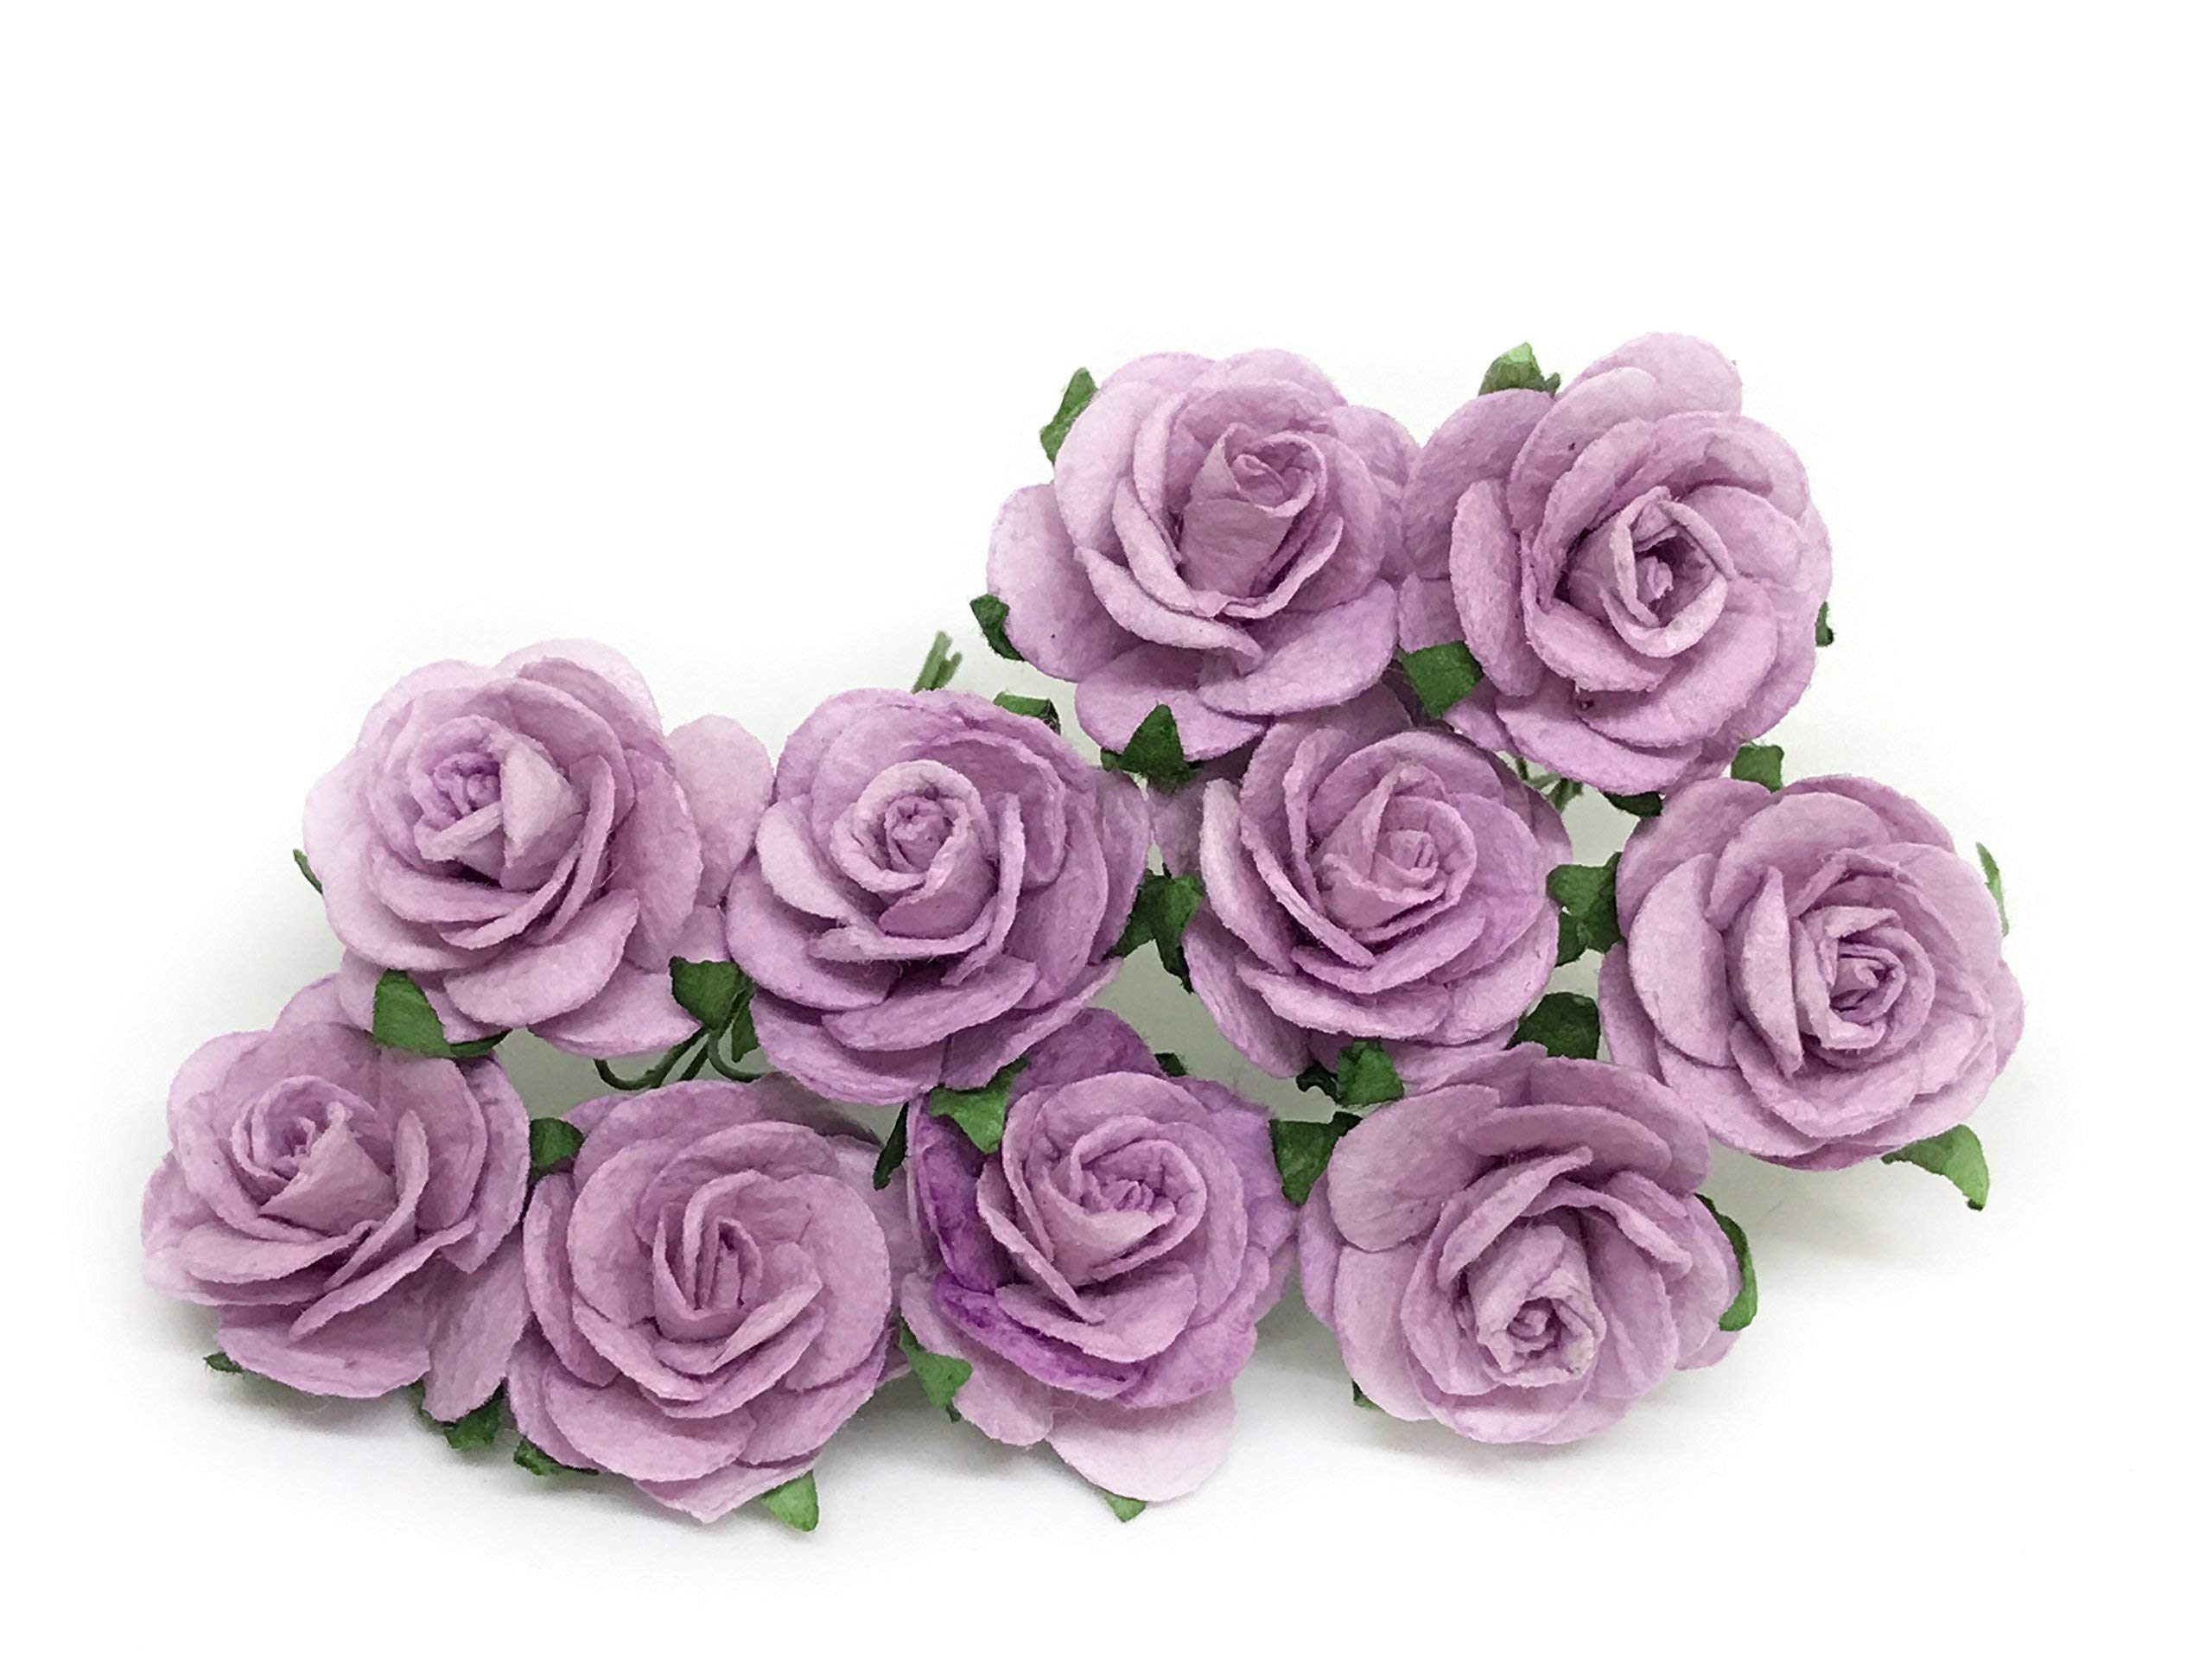 1-Lilac-Paper-Flowers-Paper-Rose-Artificial-Flowers-Fake-Flowers-Artificial-Roses-Paper-Craft-Flowers-Paper-Rose-Flower-Mulberry-Paper-Flowers-20-Pieces